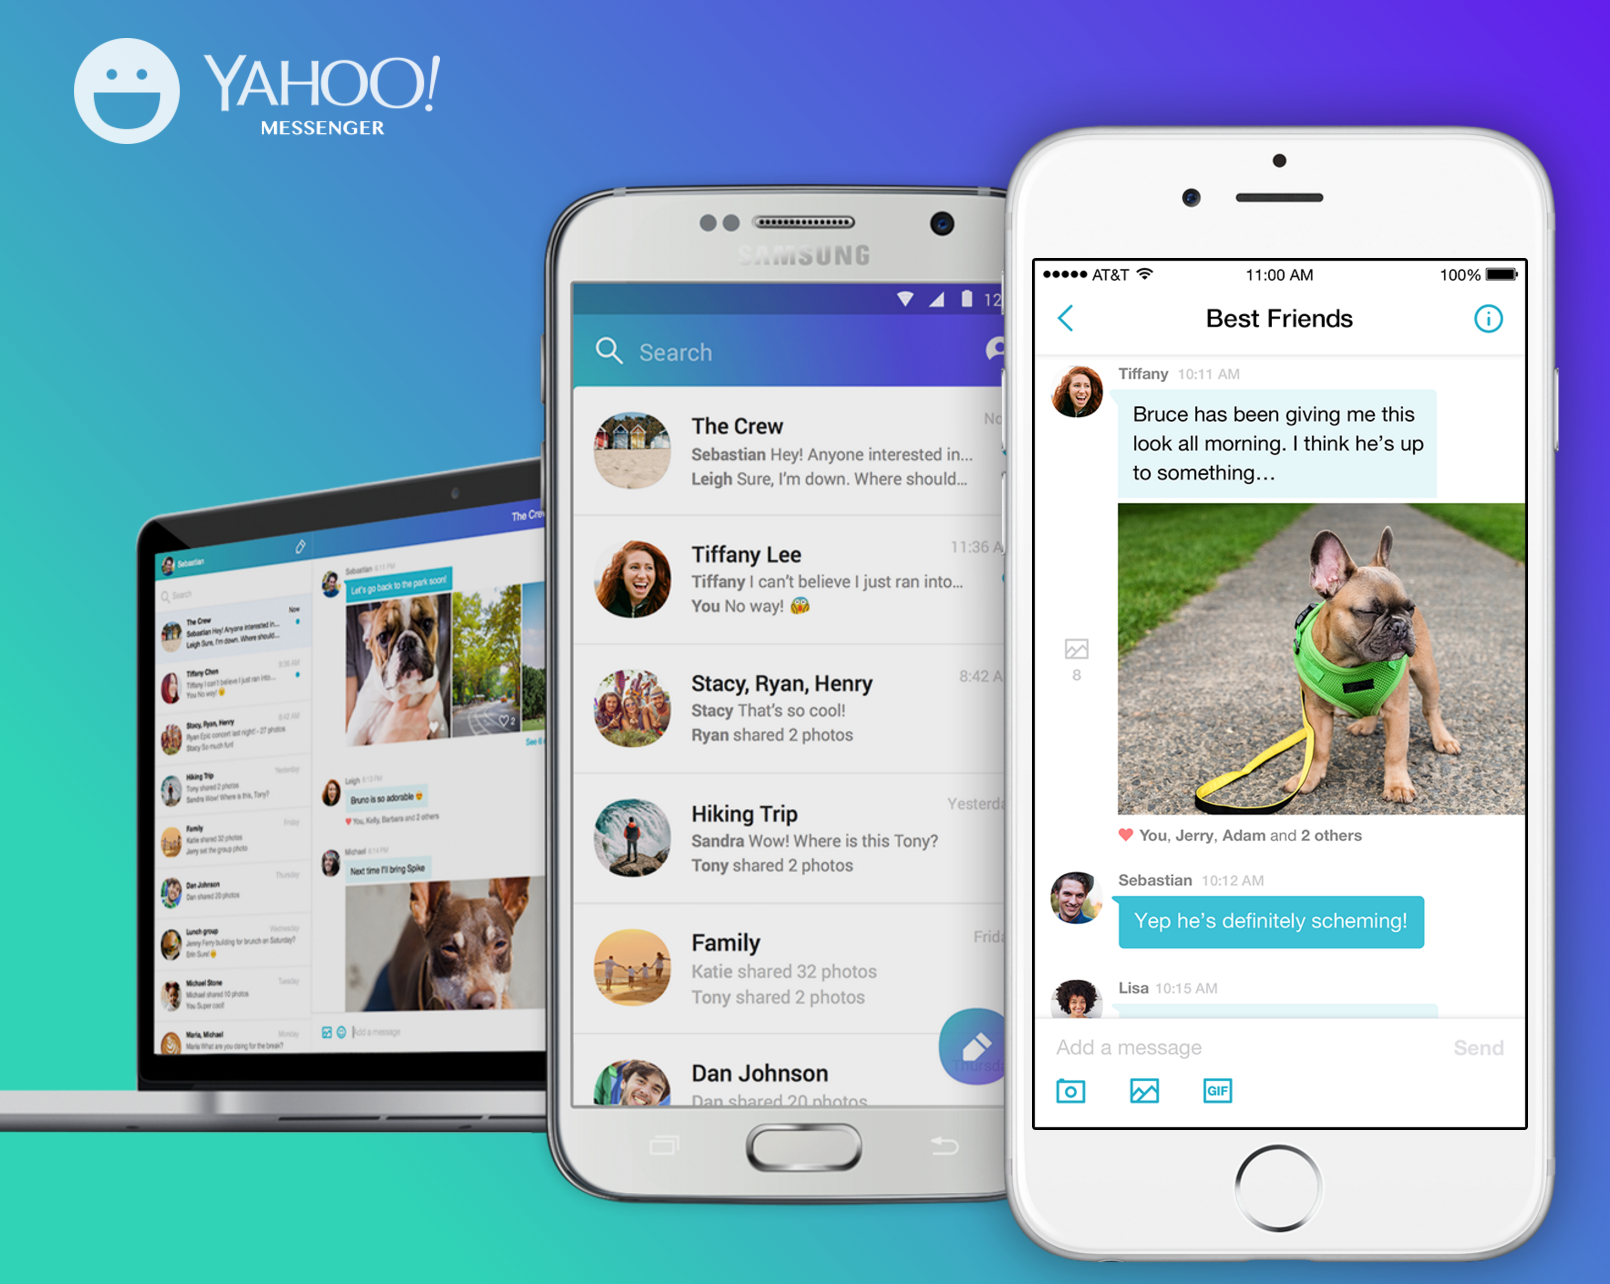 Yahoo Messenger to be Shut Down on July 17, 2018